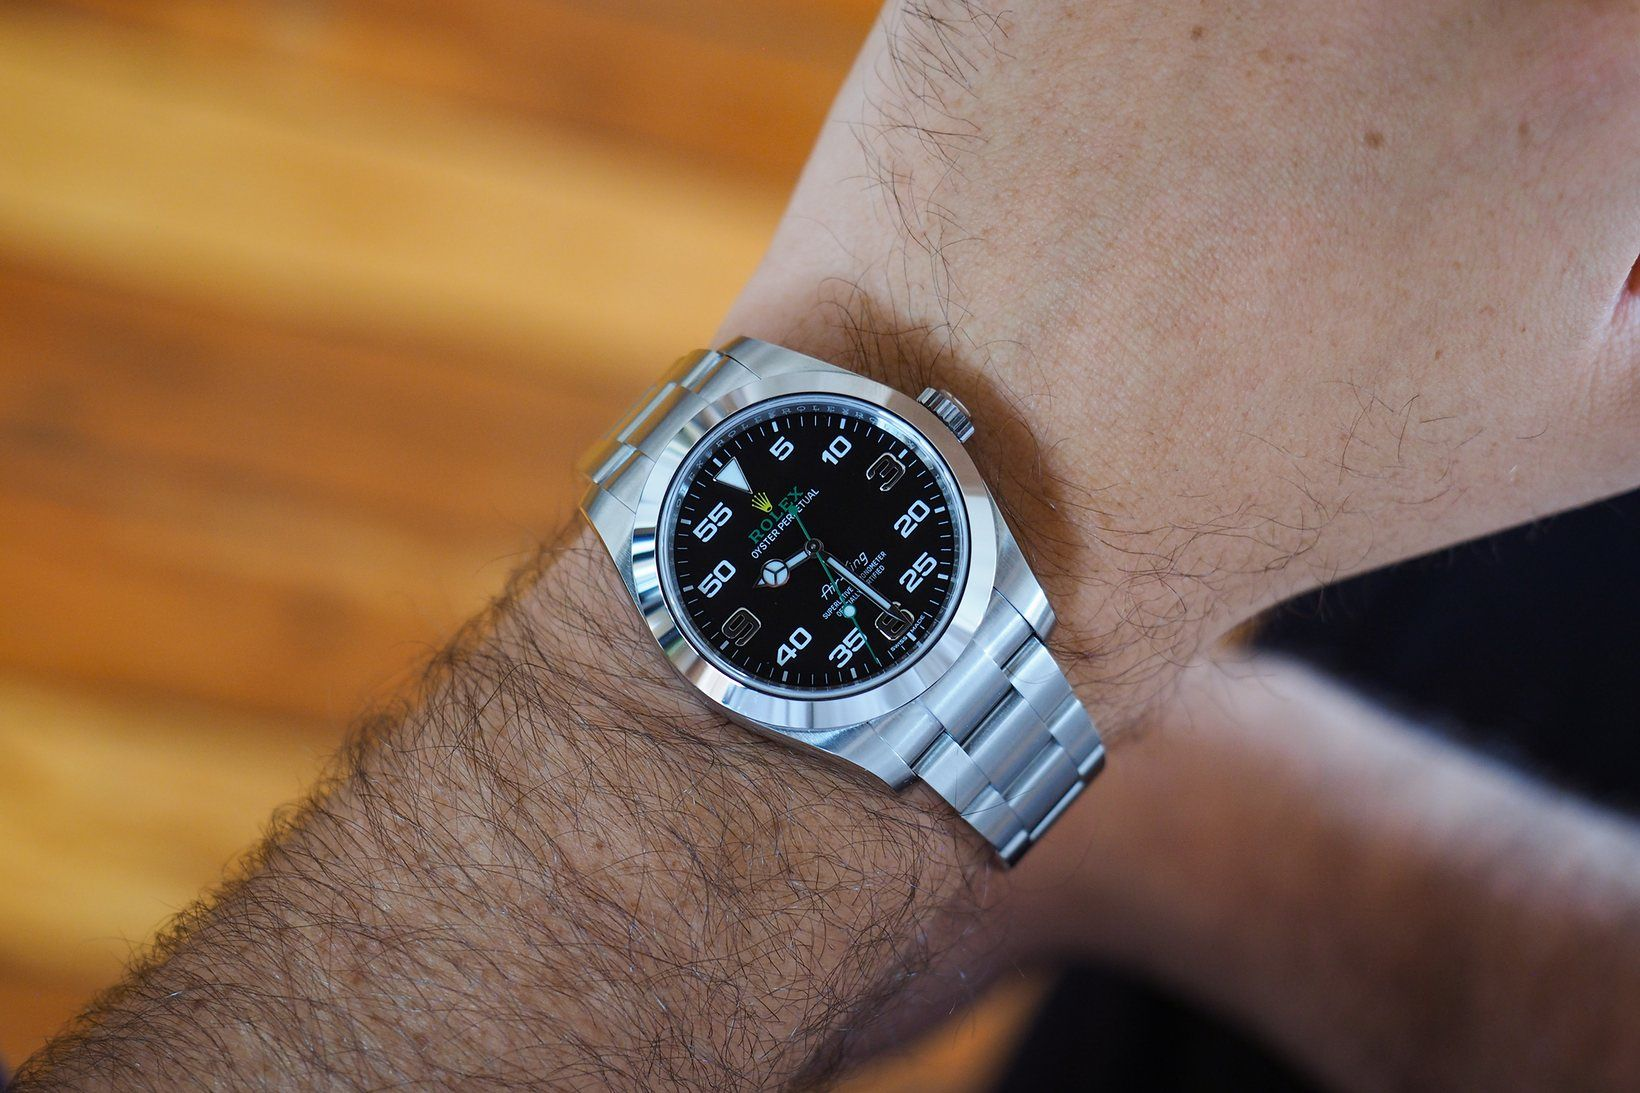 A Week On The Wrist The 2016 Rolex AirKing Reference